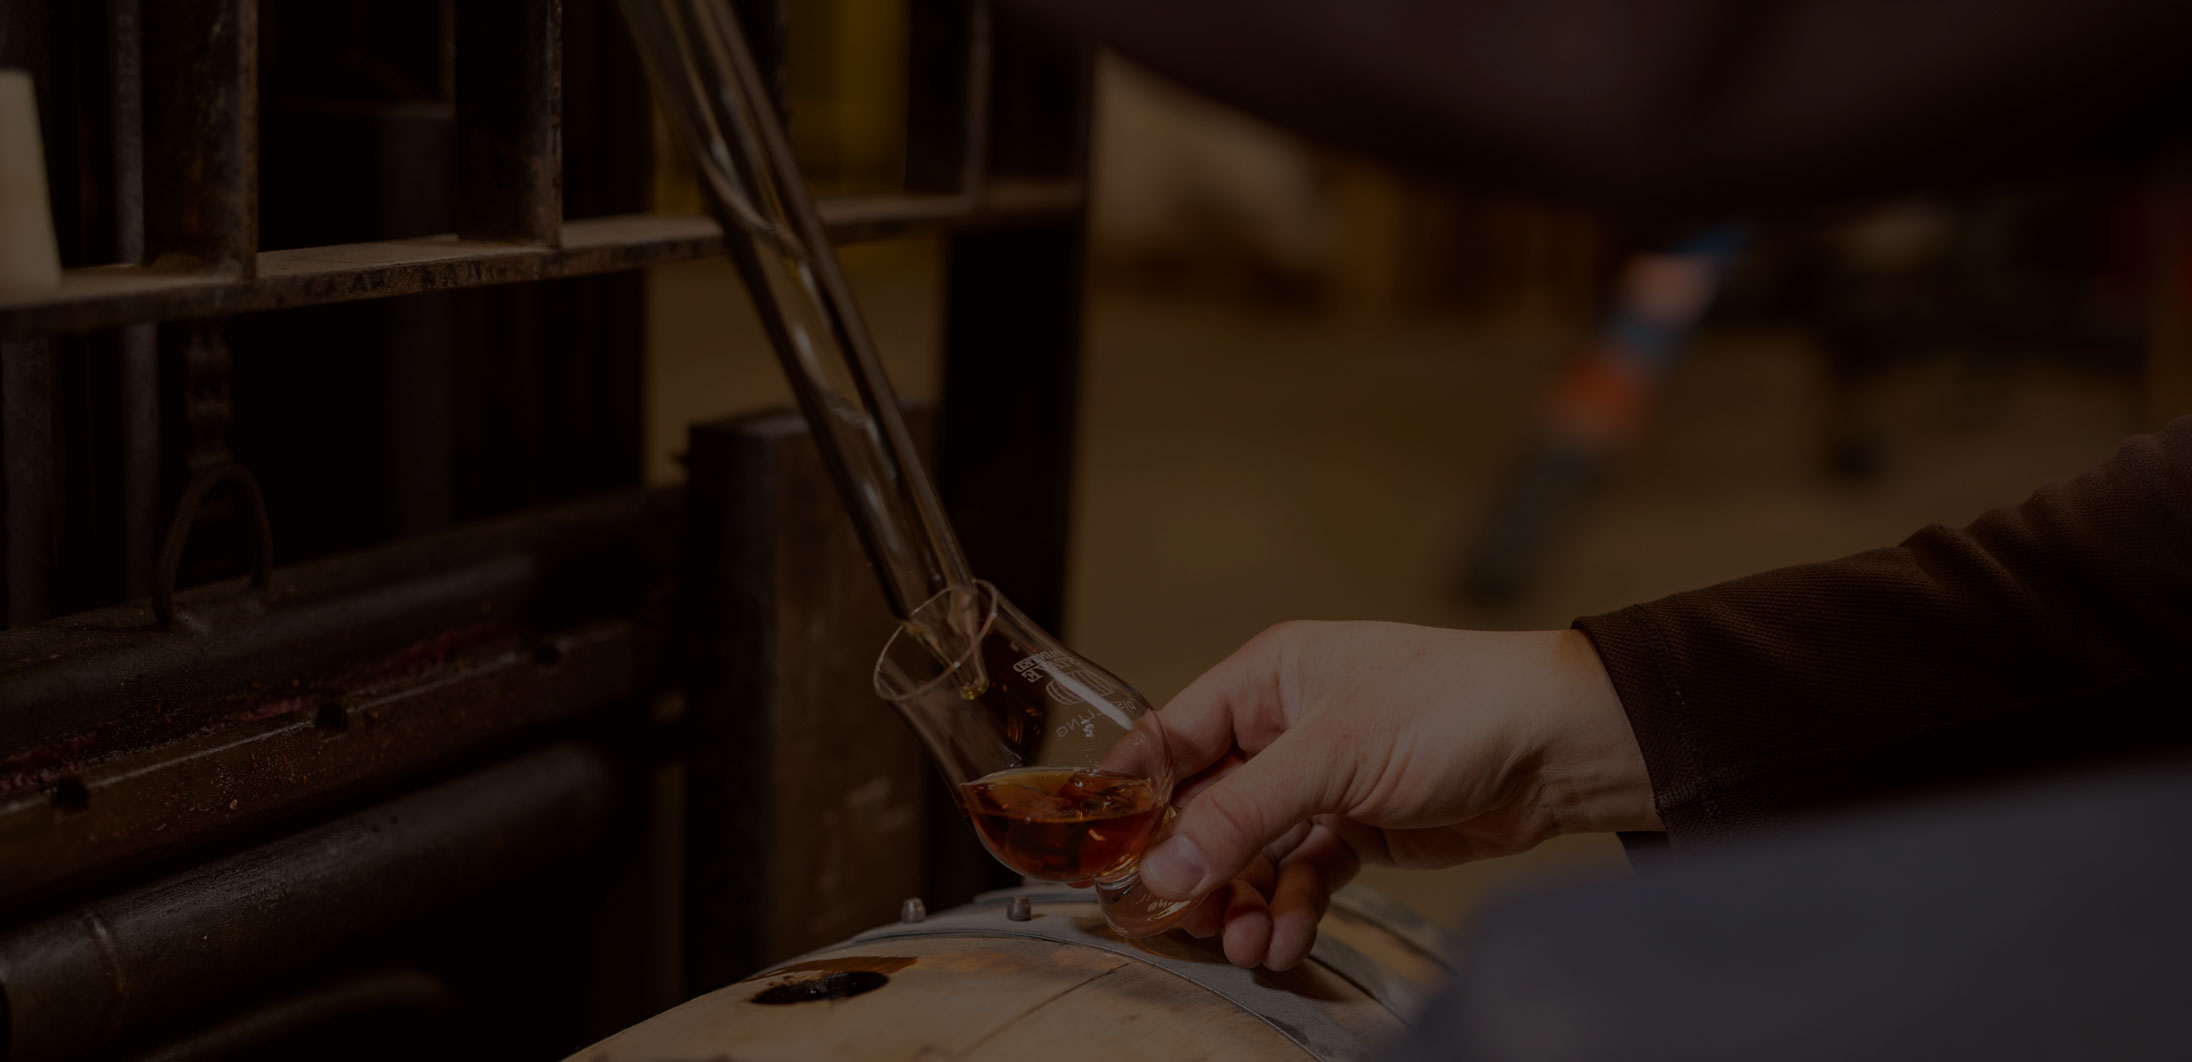 Our Spirits - Everything we make starts from the same place, our commitment to making high quality and unique spirits from the finest raw materials. We distill and bottle all of our products by hand, making each of them unique and wonderful it their own way.